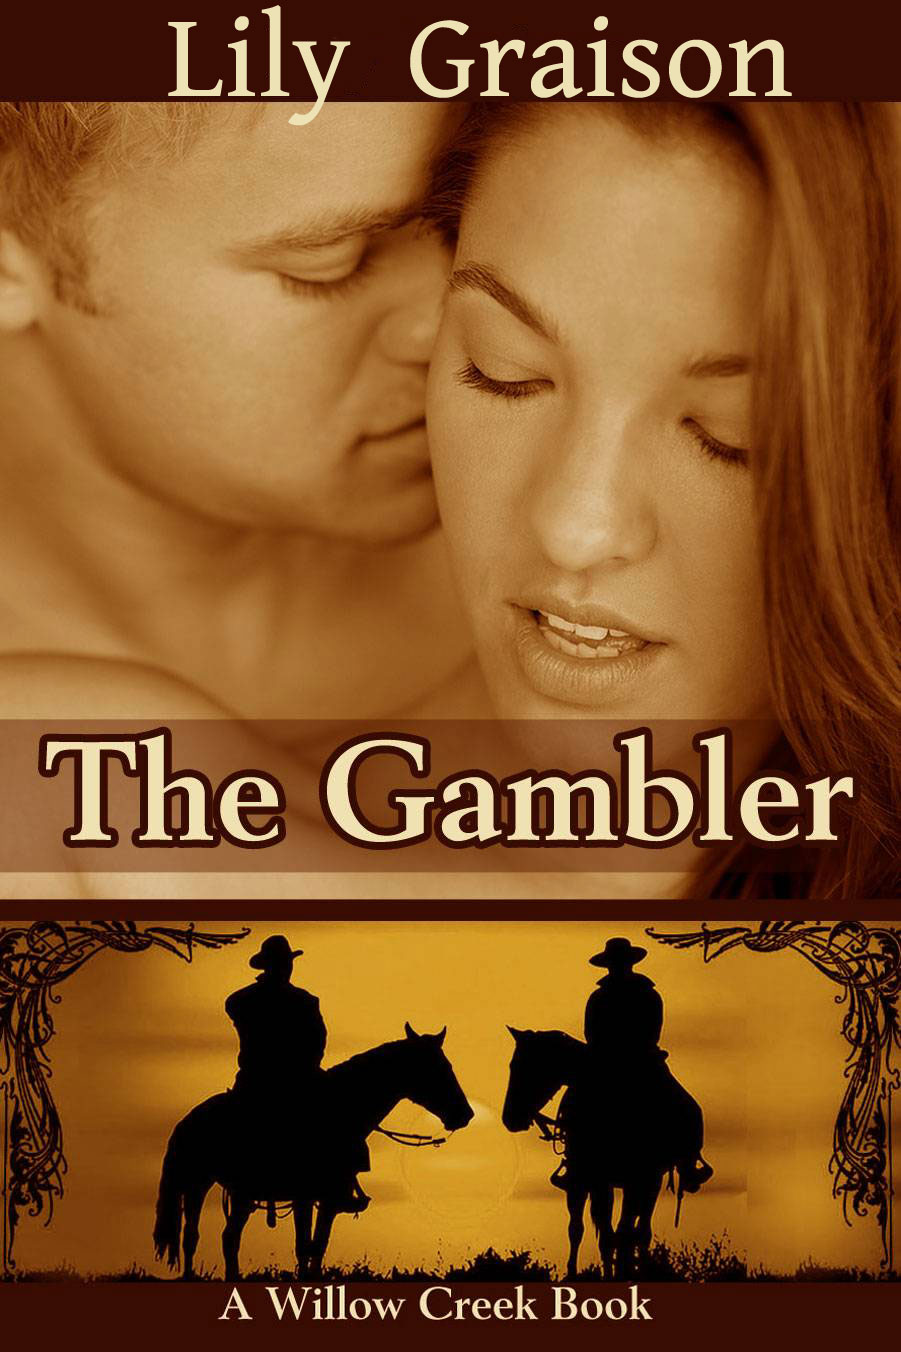 The Gambler by Lily Graison - Book 3 in the Willow Creek, Historical Western Romance Series